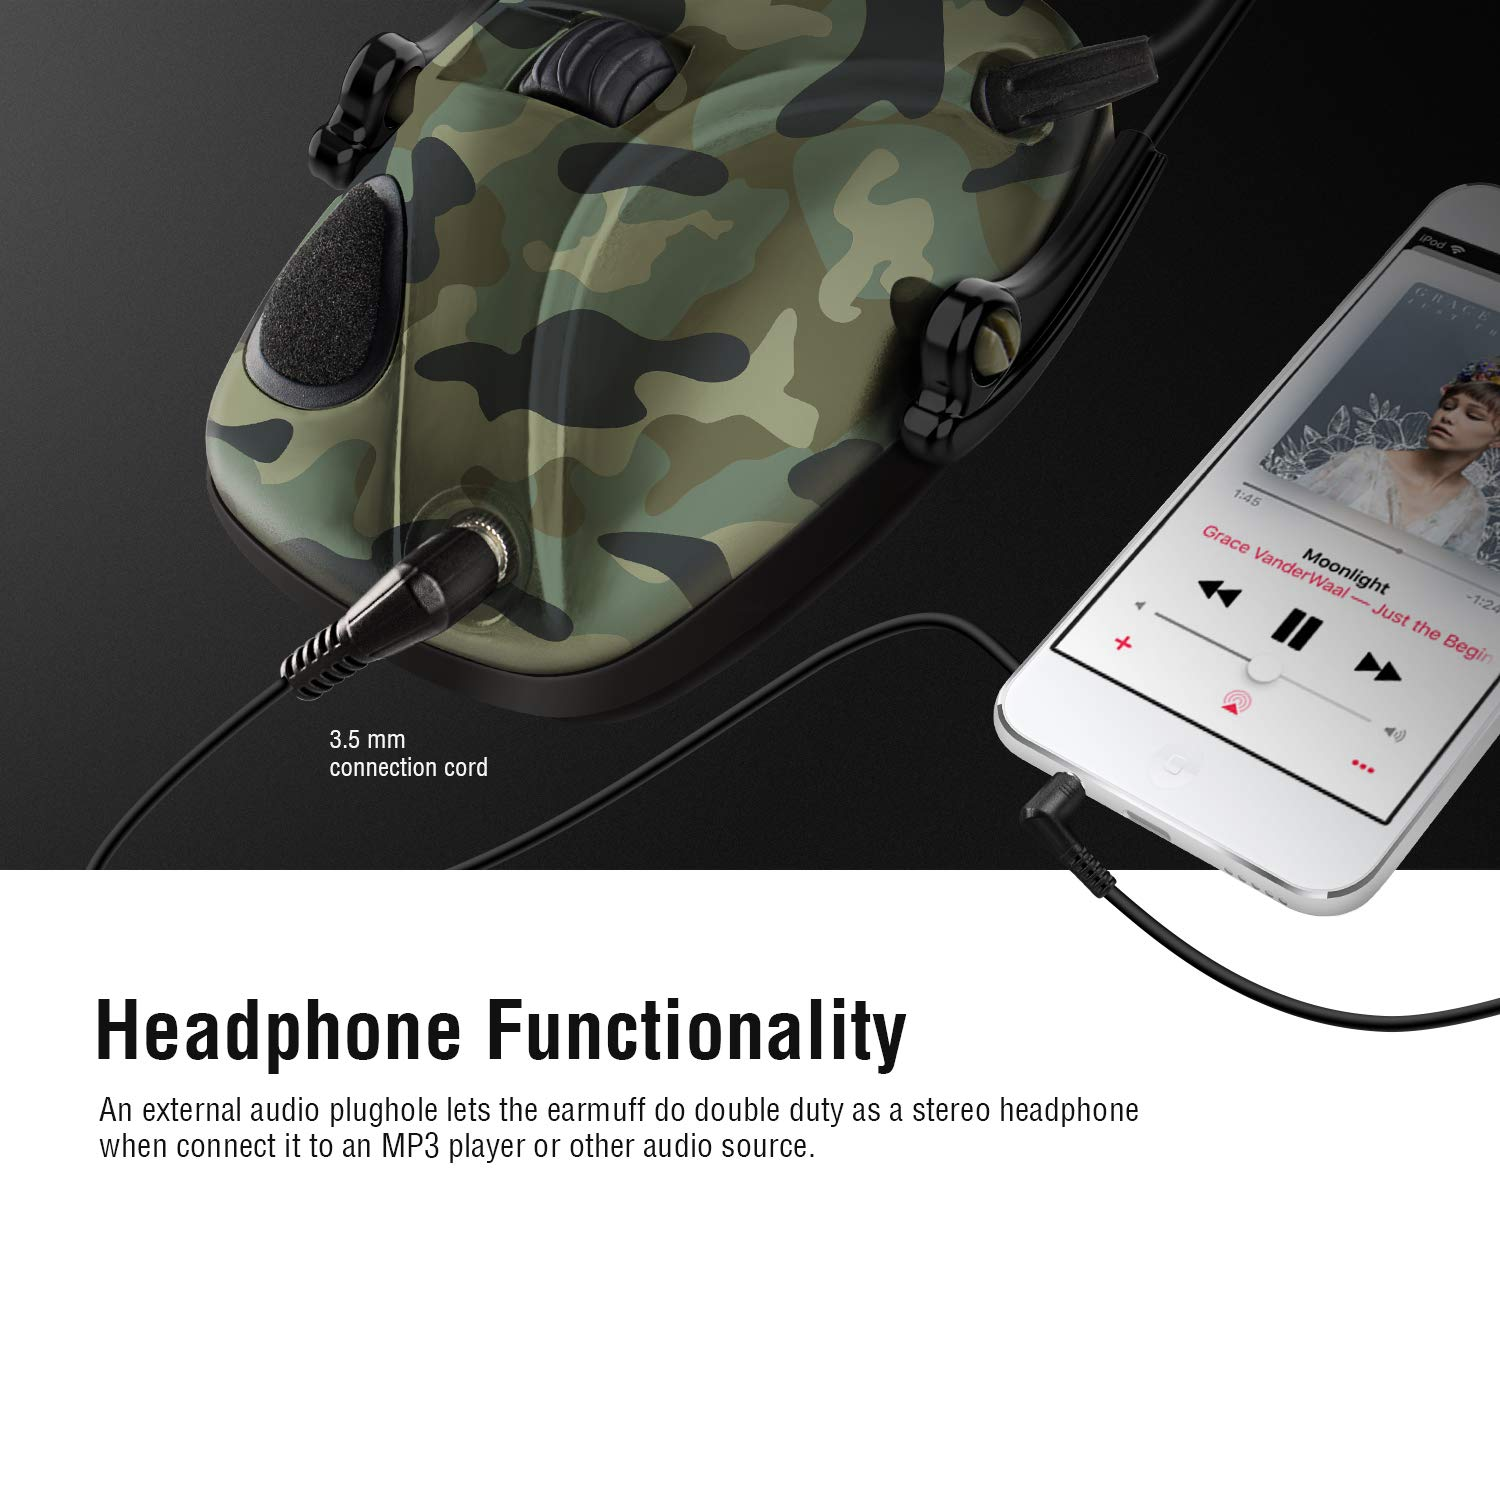 Awesafe Electronic Shooting Earmuff, Awesafe GF01 Noise Reduction Sound Amplification Electronic Safety Ear Muffs, Ear Protection, NRR 22 dB, Ideal for Shooting and Hunting … Camon by awesafe  (Image #6)